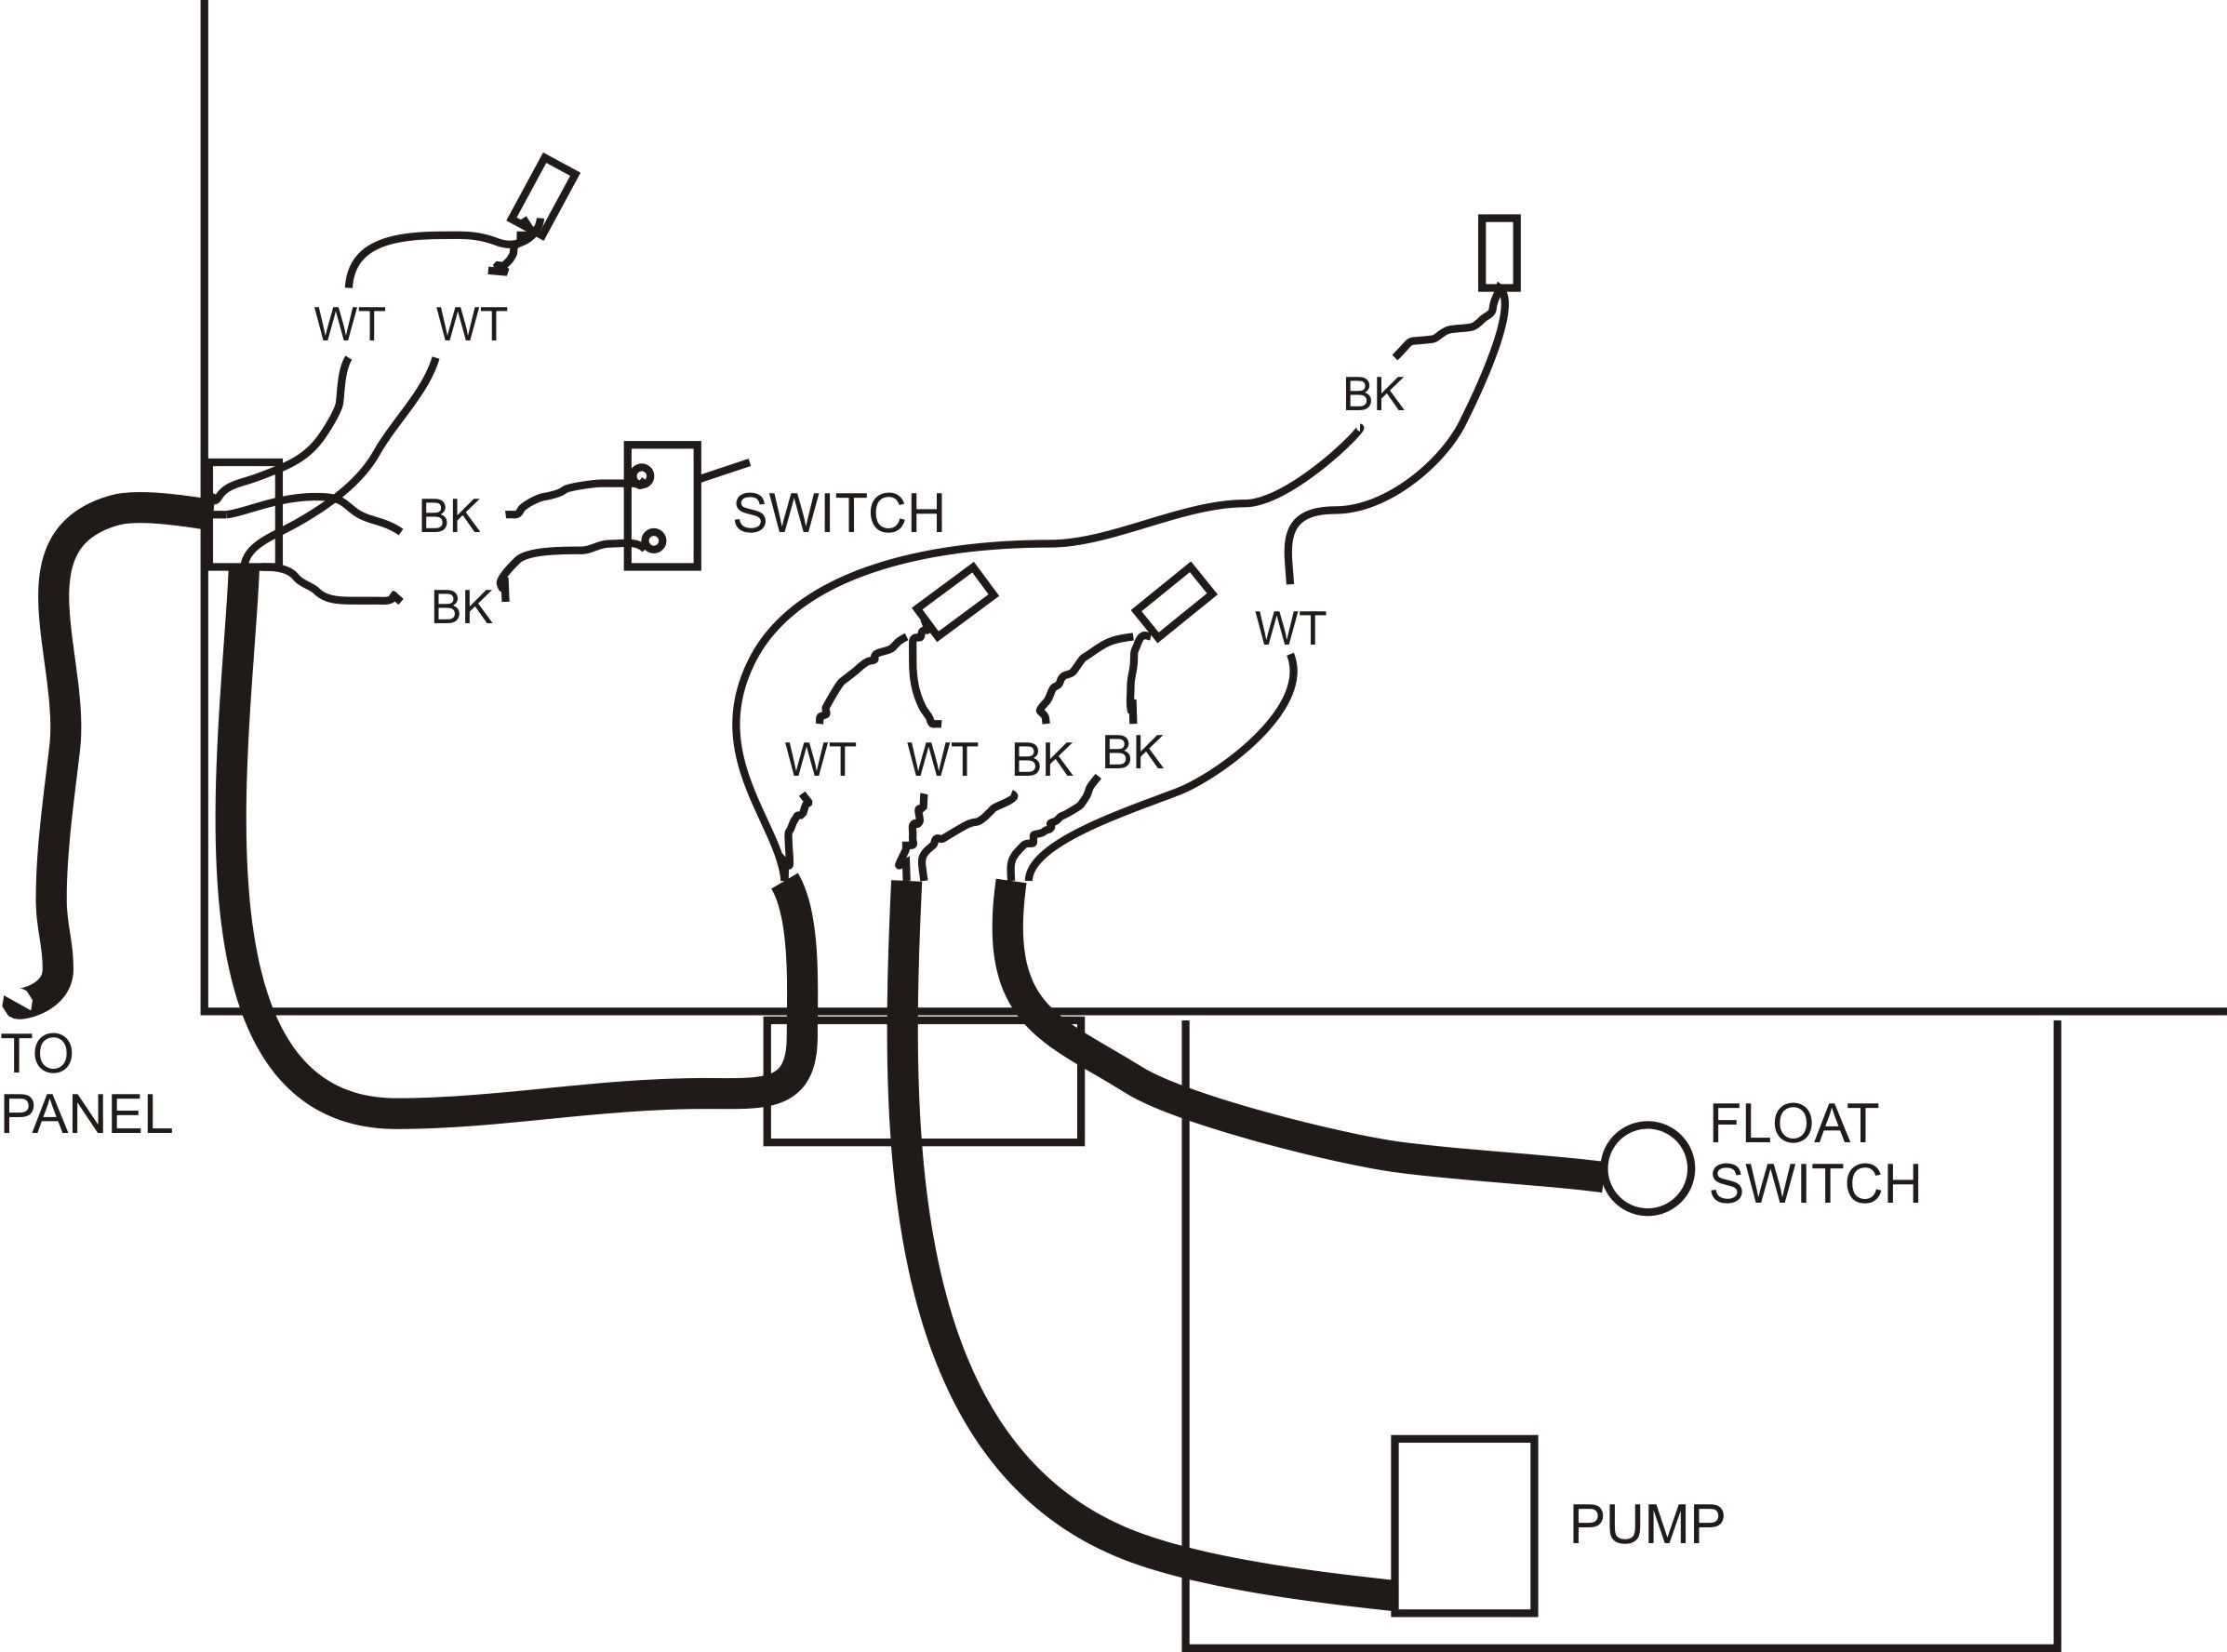 Electric Wiring Diagram Septic - Worksheet And Wiring Diagram • - Septic Tank Float Switch Wiring Diagram